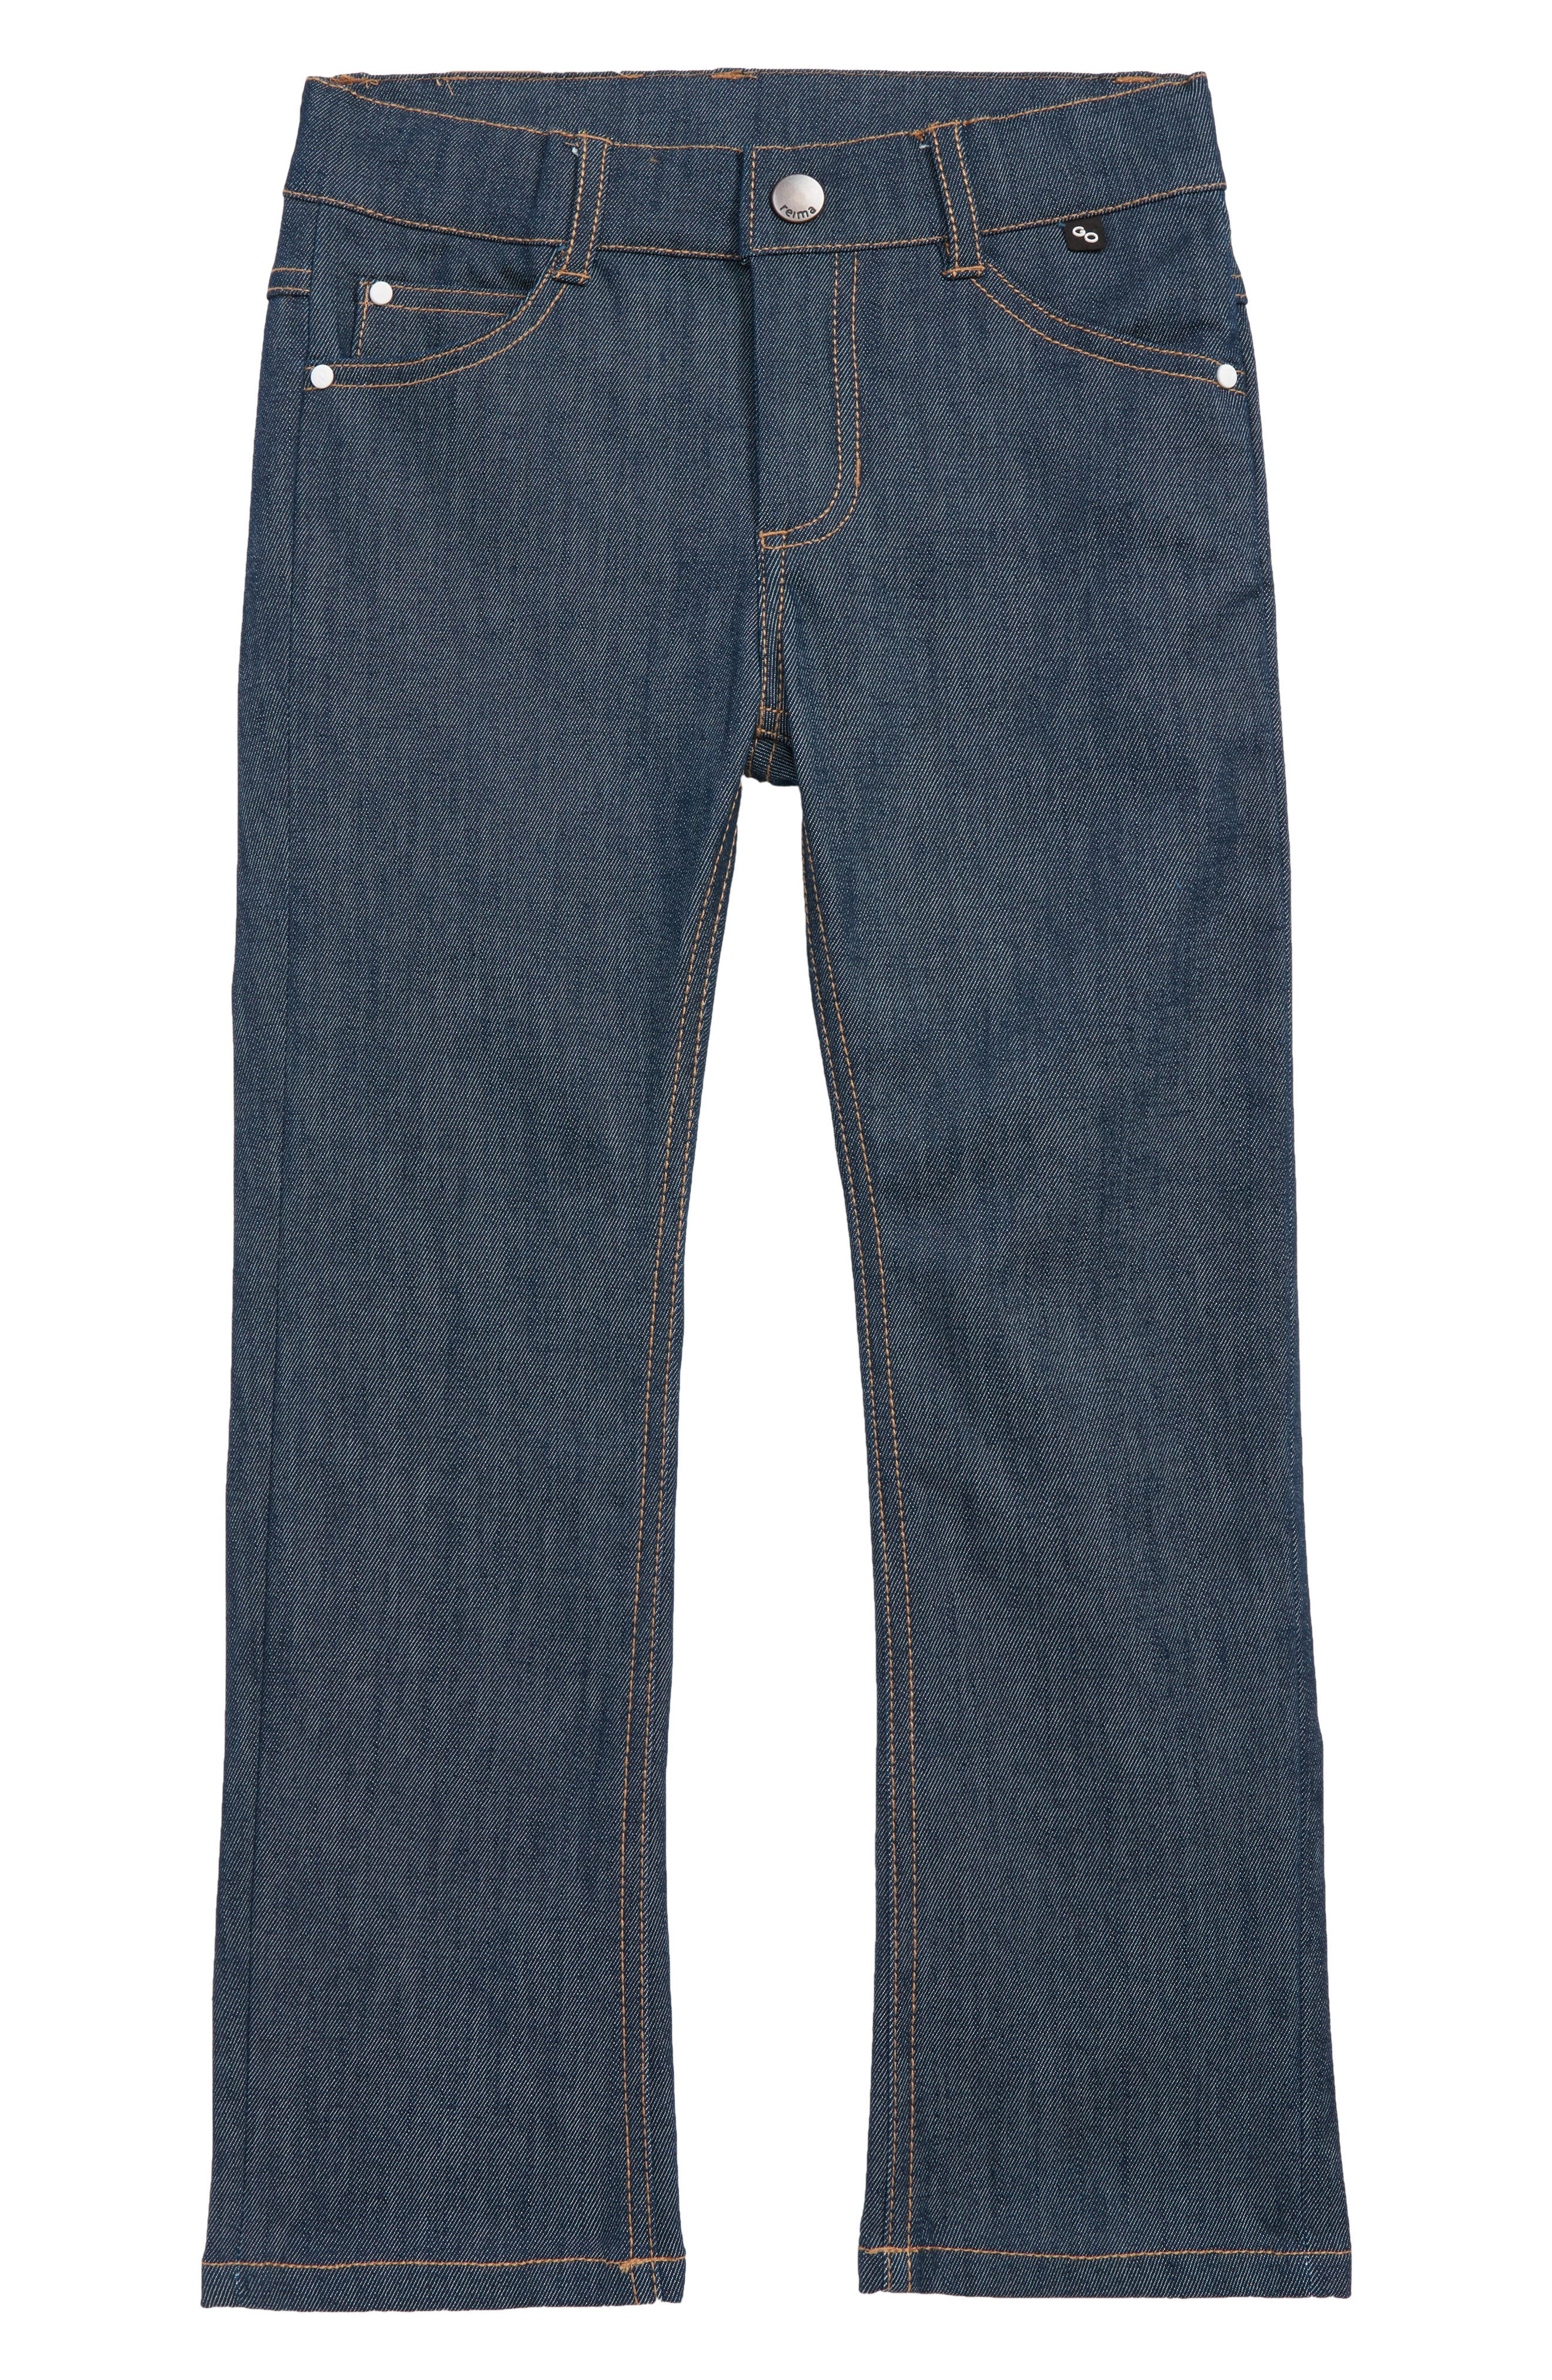 Trick Thermolite<sup>®</sup> Jeans,                         Main,                         color, NAVY